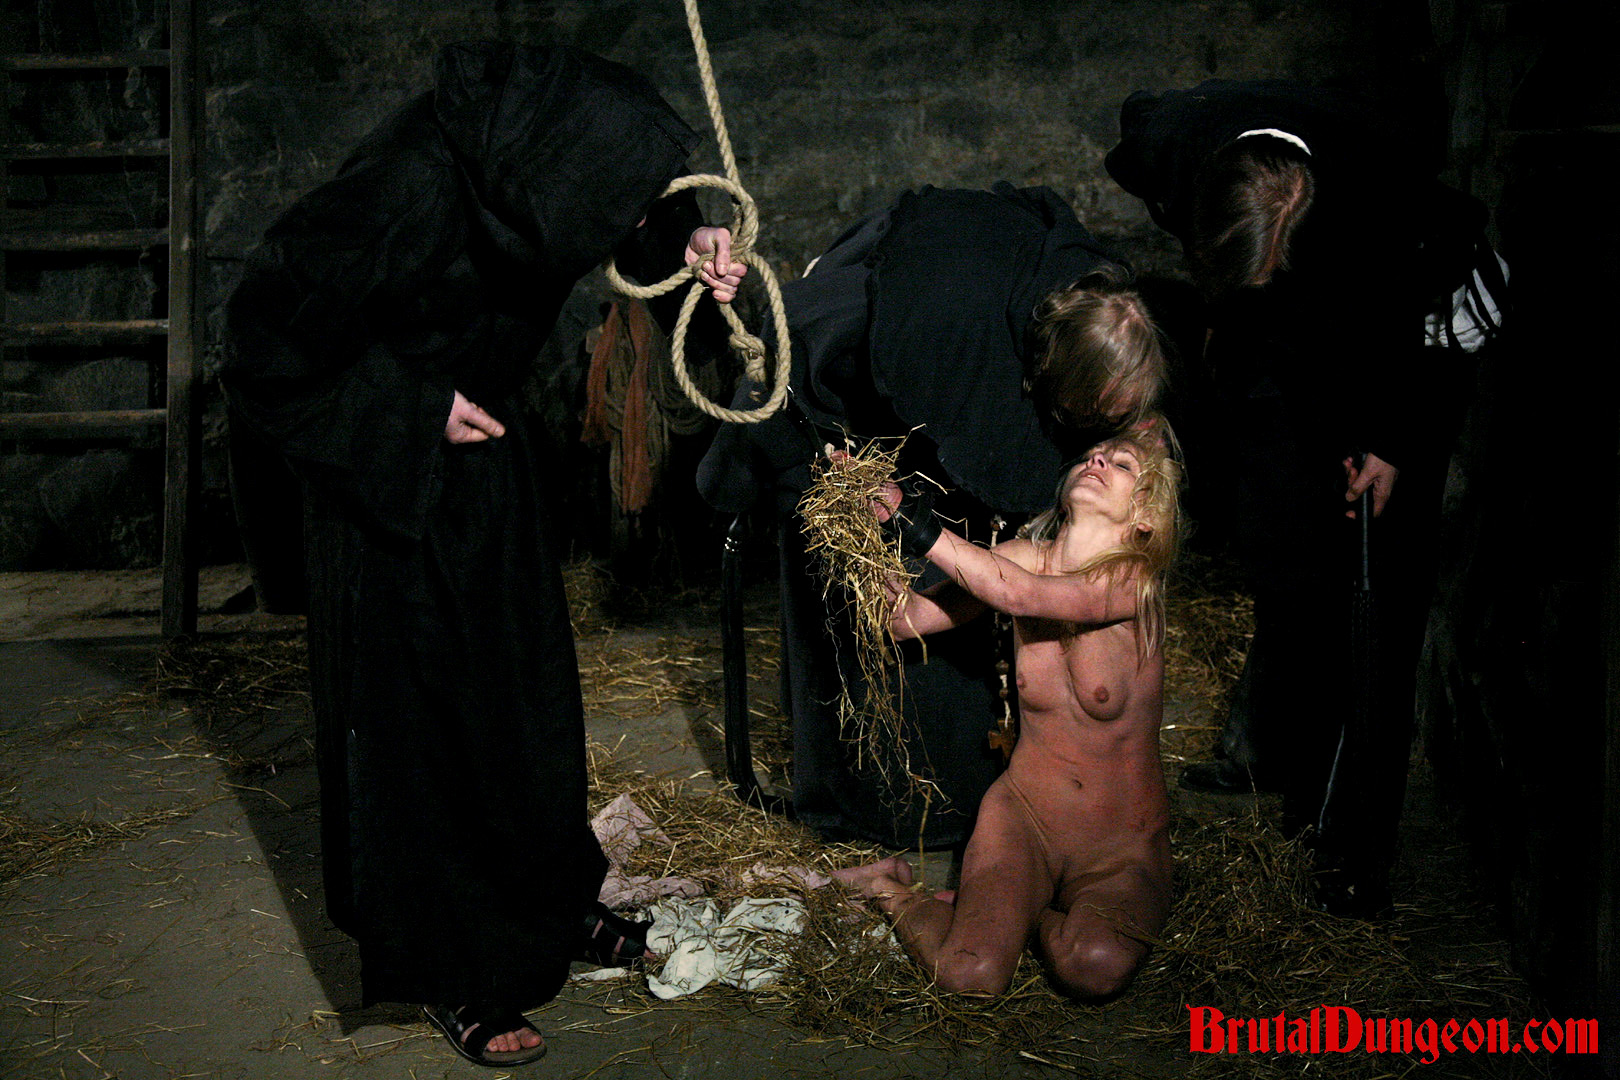 Blonde magda imprisoned for b d s m gang bang. Witch Romina was caught practicing her craft by a neighbor. She's arrested and brought to our dungeon where our guards enjoy their jobs. good blonde Romina must endure imprisonment, BDSM gang bang, domination, rope bondage and suspension, spanking, slapping, fingering, flogging, breast, nipple and pussy torment.